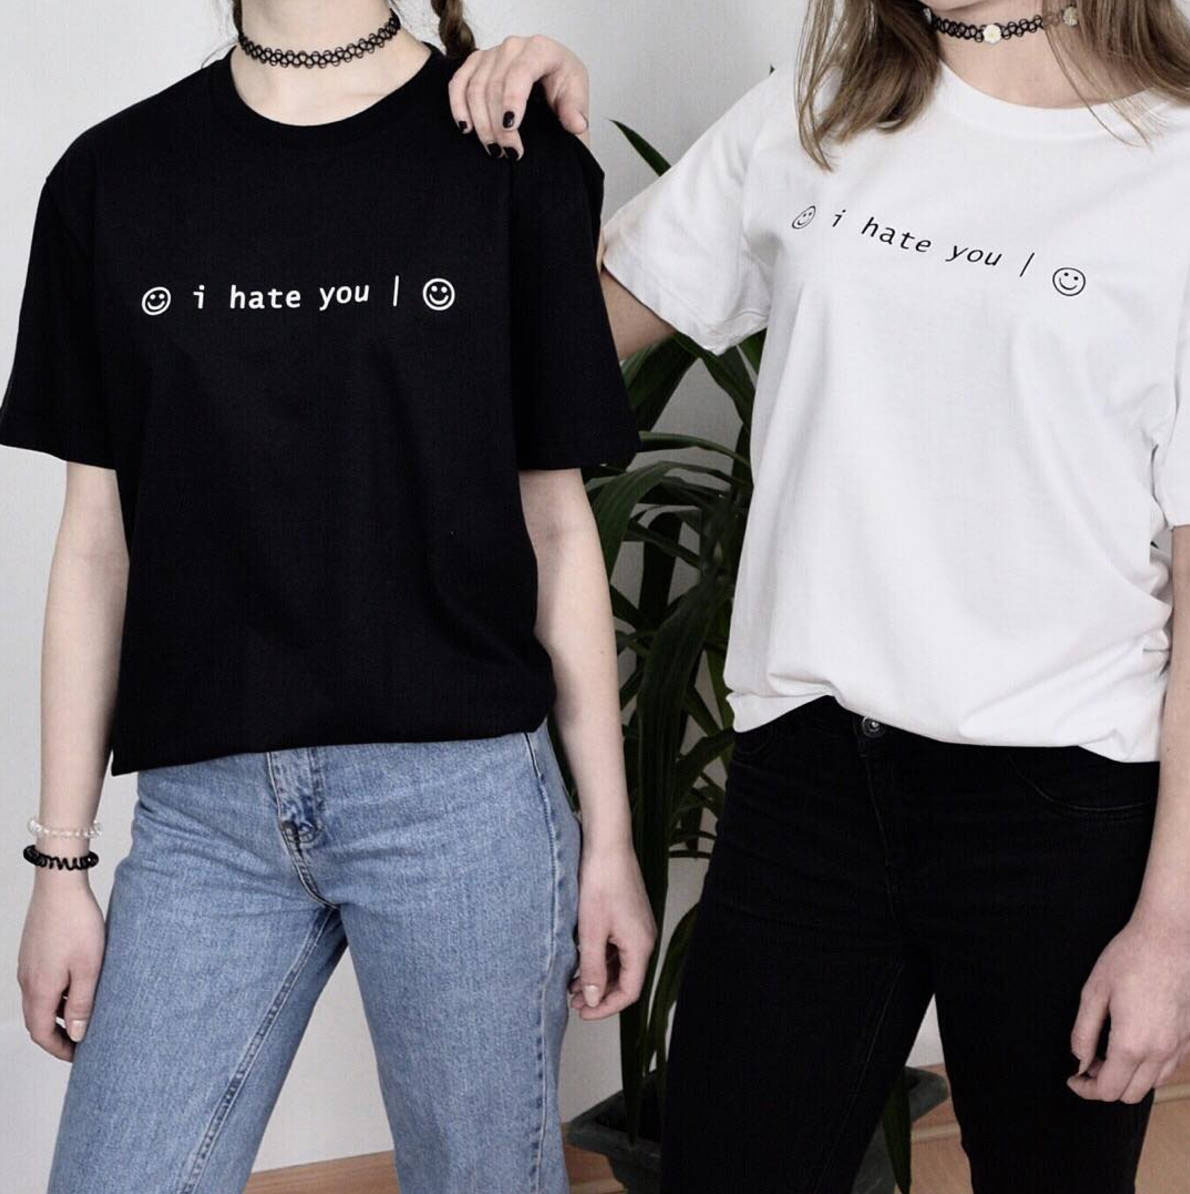 I Hate You Smiley Face T-shirt Tumblr Inspired Pastel Pale Grunge Aesthetic Tee 2017 new